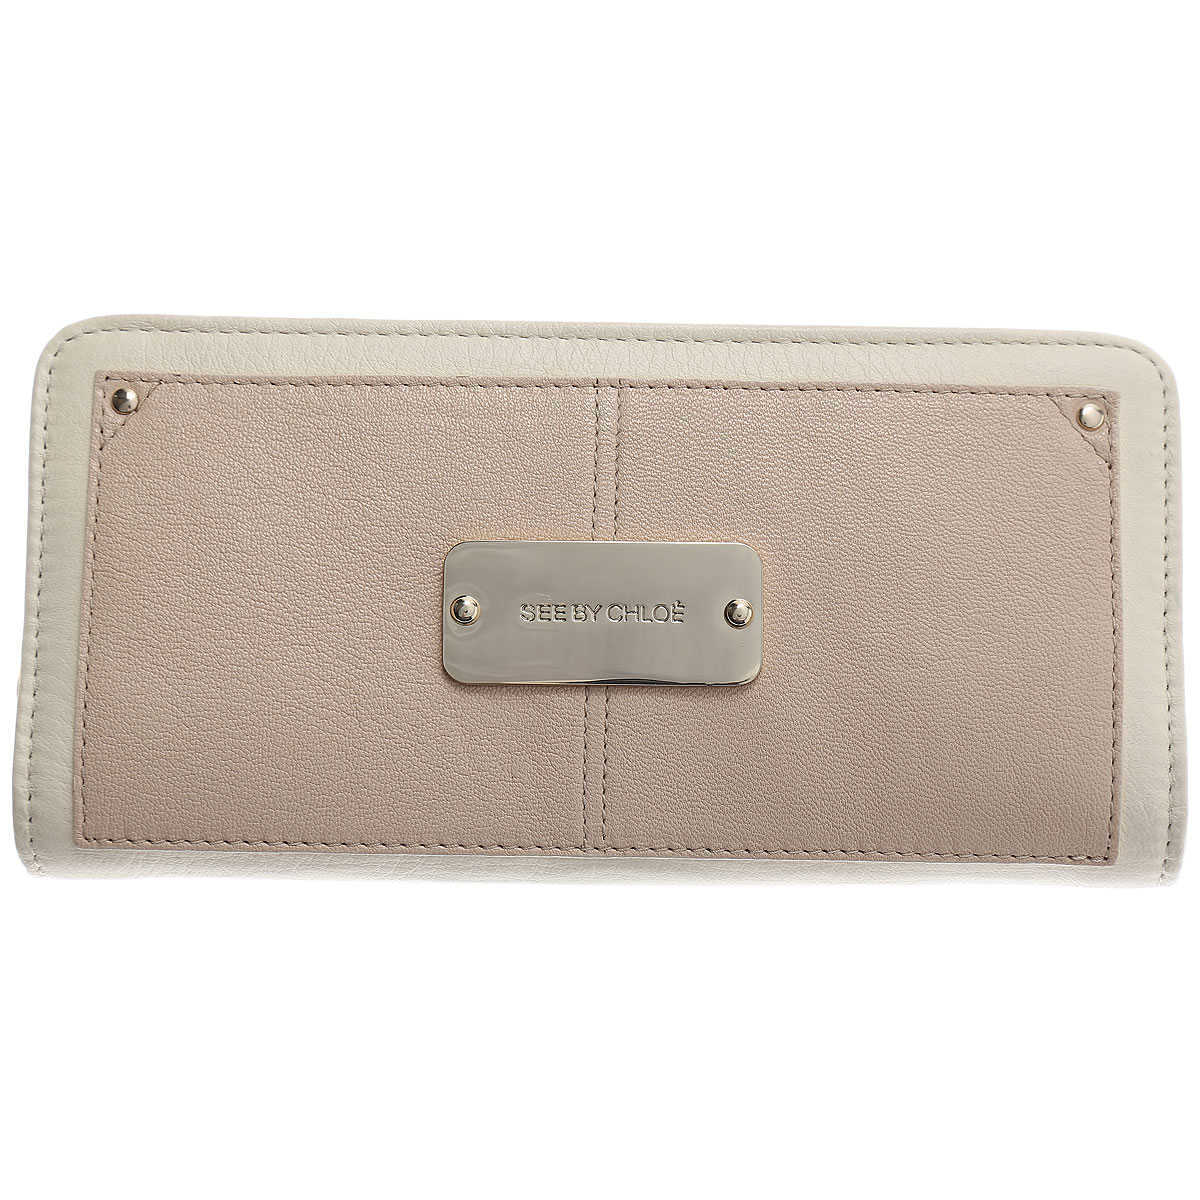 See By Chloe Wallet for Women Cream - GOOFASH